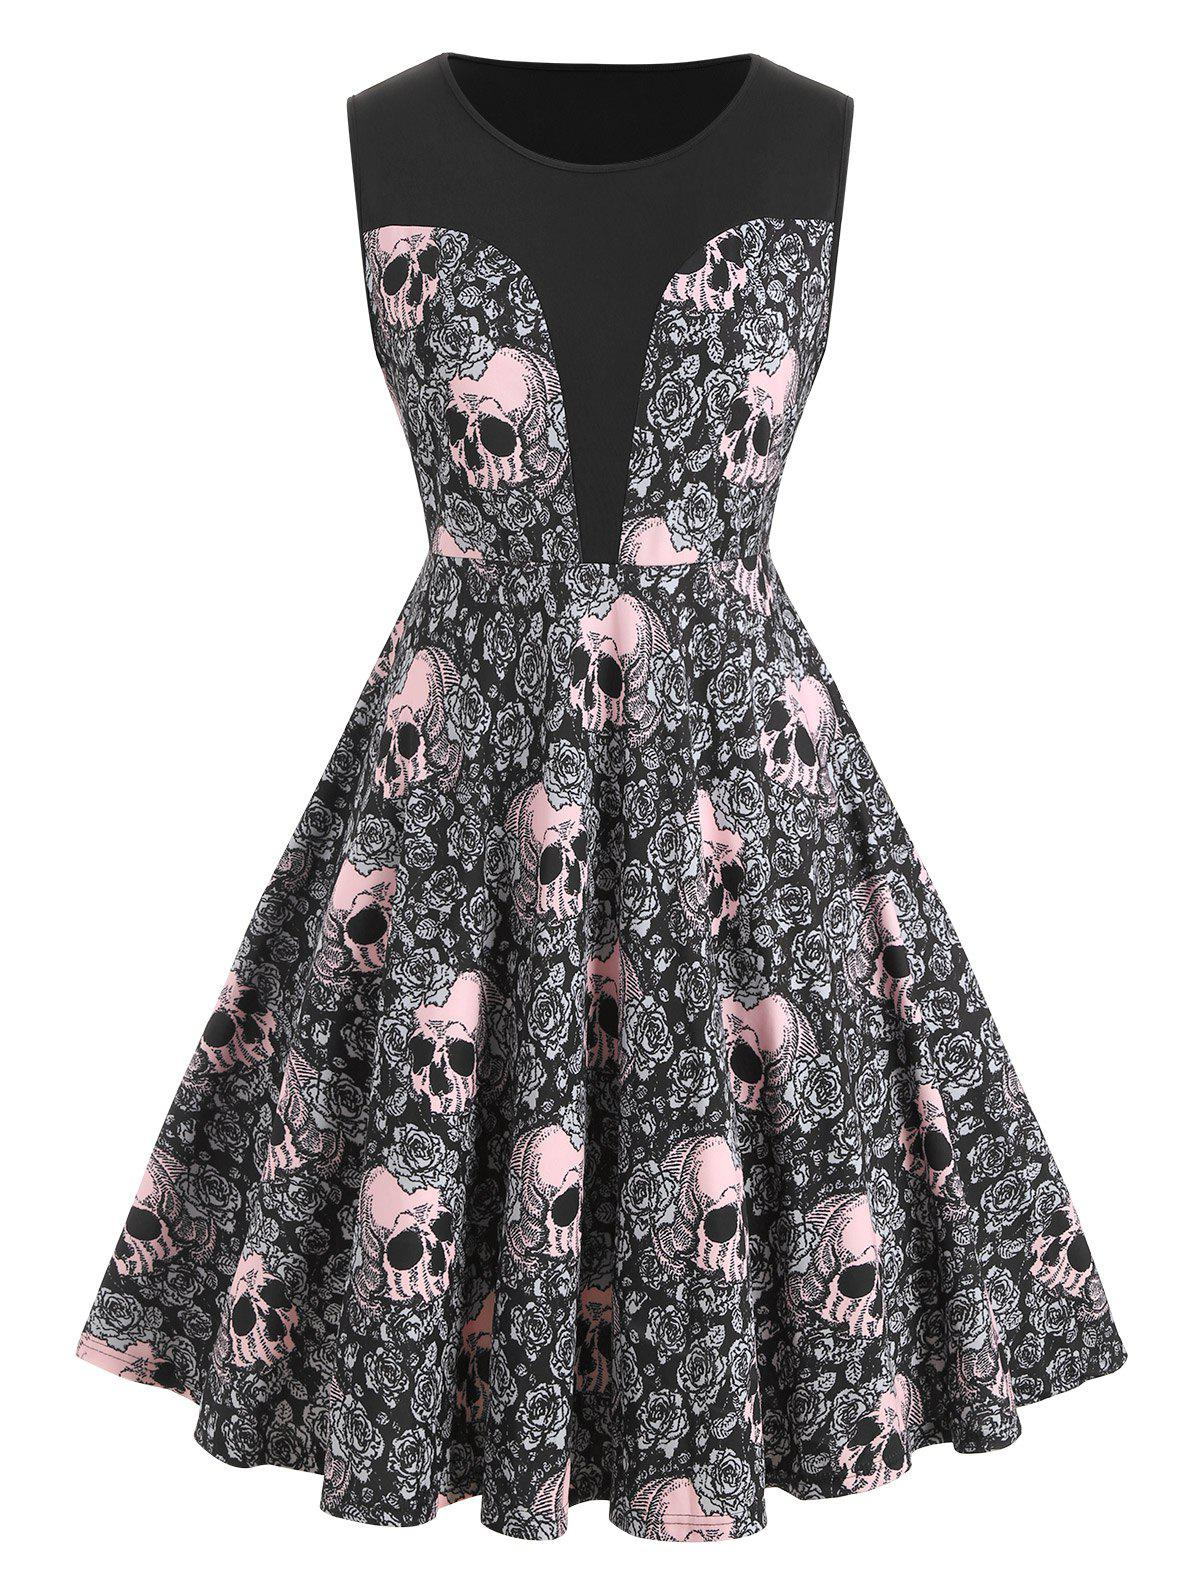 Plus Size Halloween Skull Floral Print Retro Party Dress